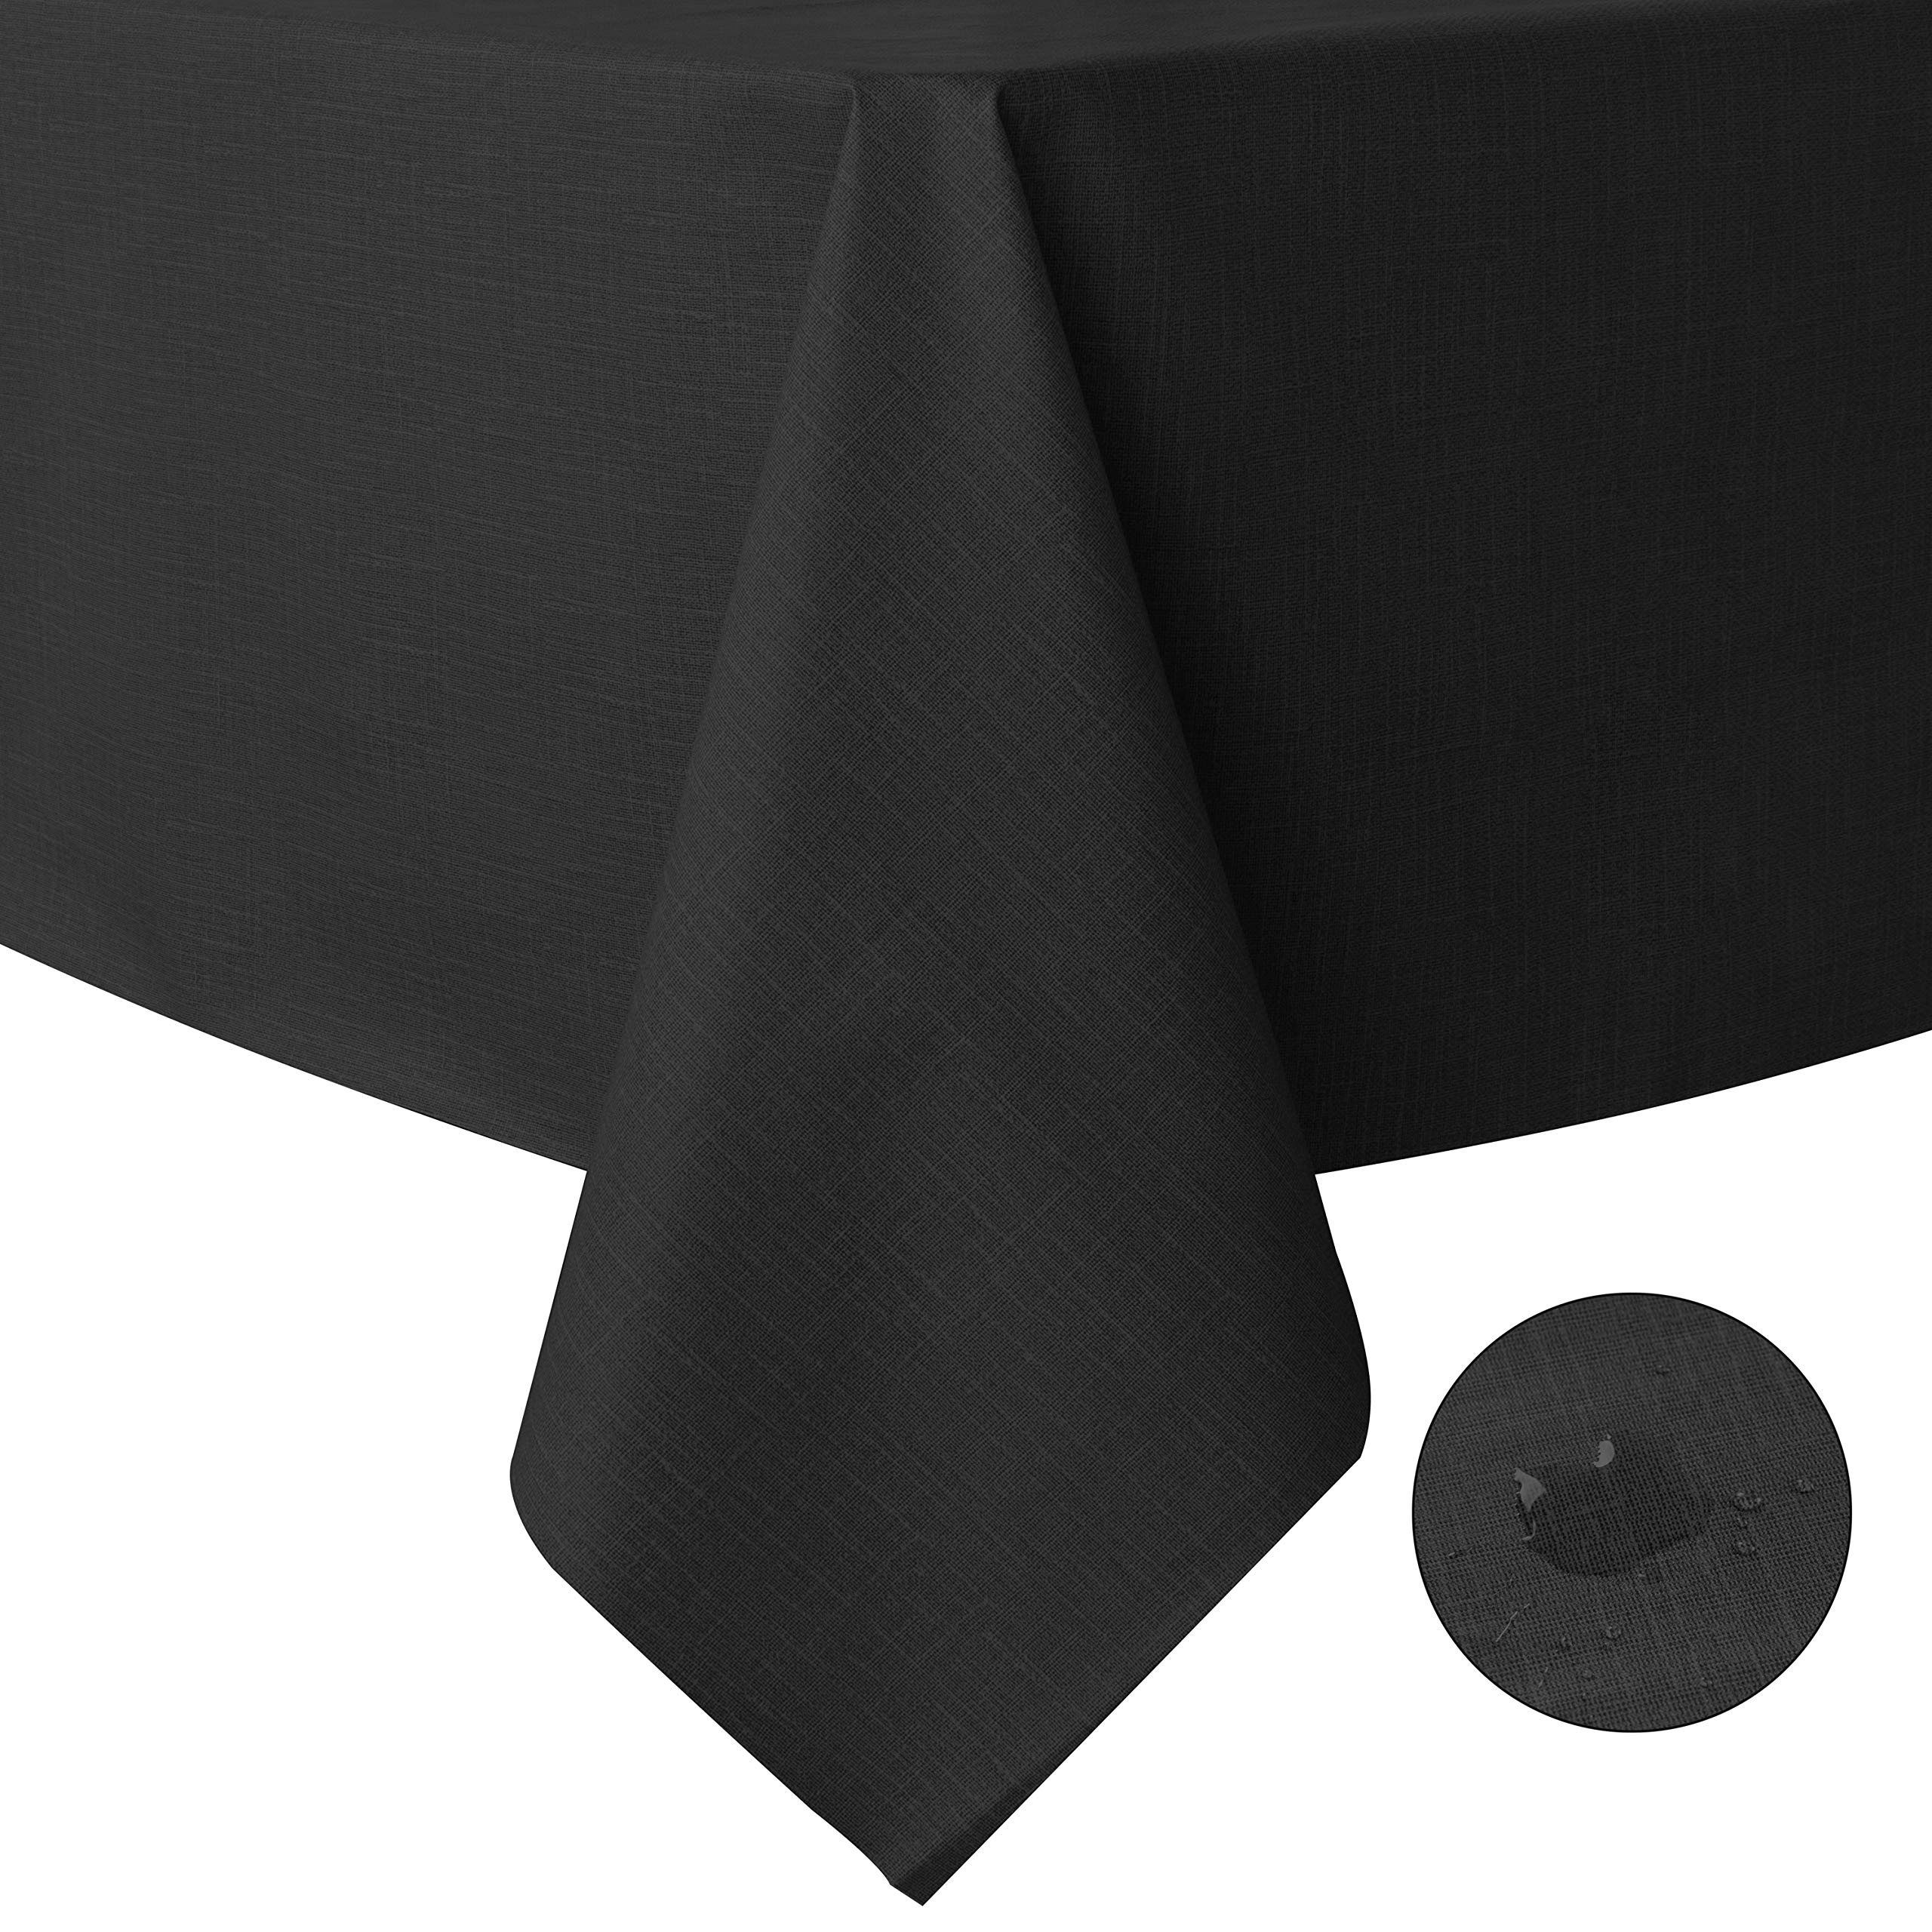 sancua 100% Waterproof Rectangle PVC Tablecloth - 60 x 140 Inch - Oil Proof Spill Proof Vinyl Table Cloth, Wipe Clean Table Cover for Dining Table, Buffet Parties and Camping, Black